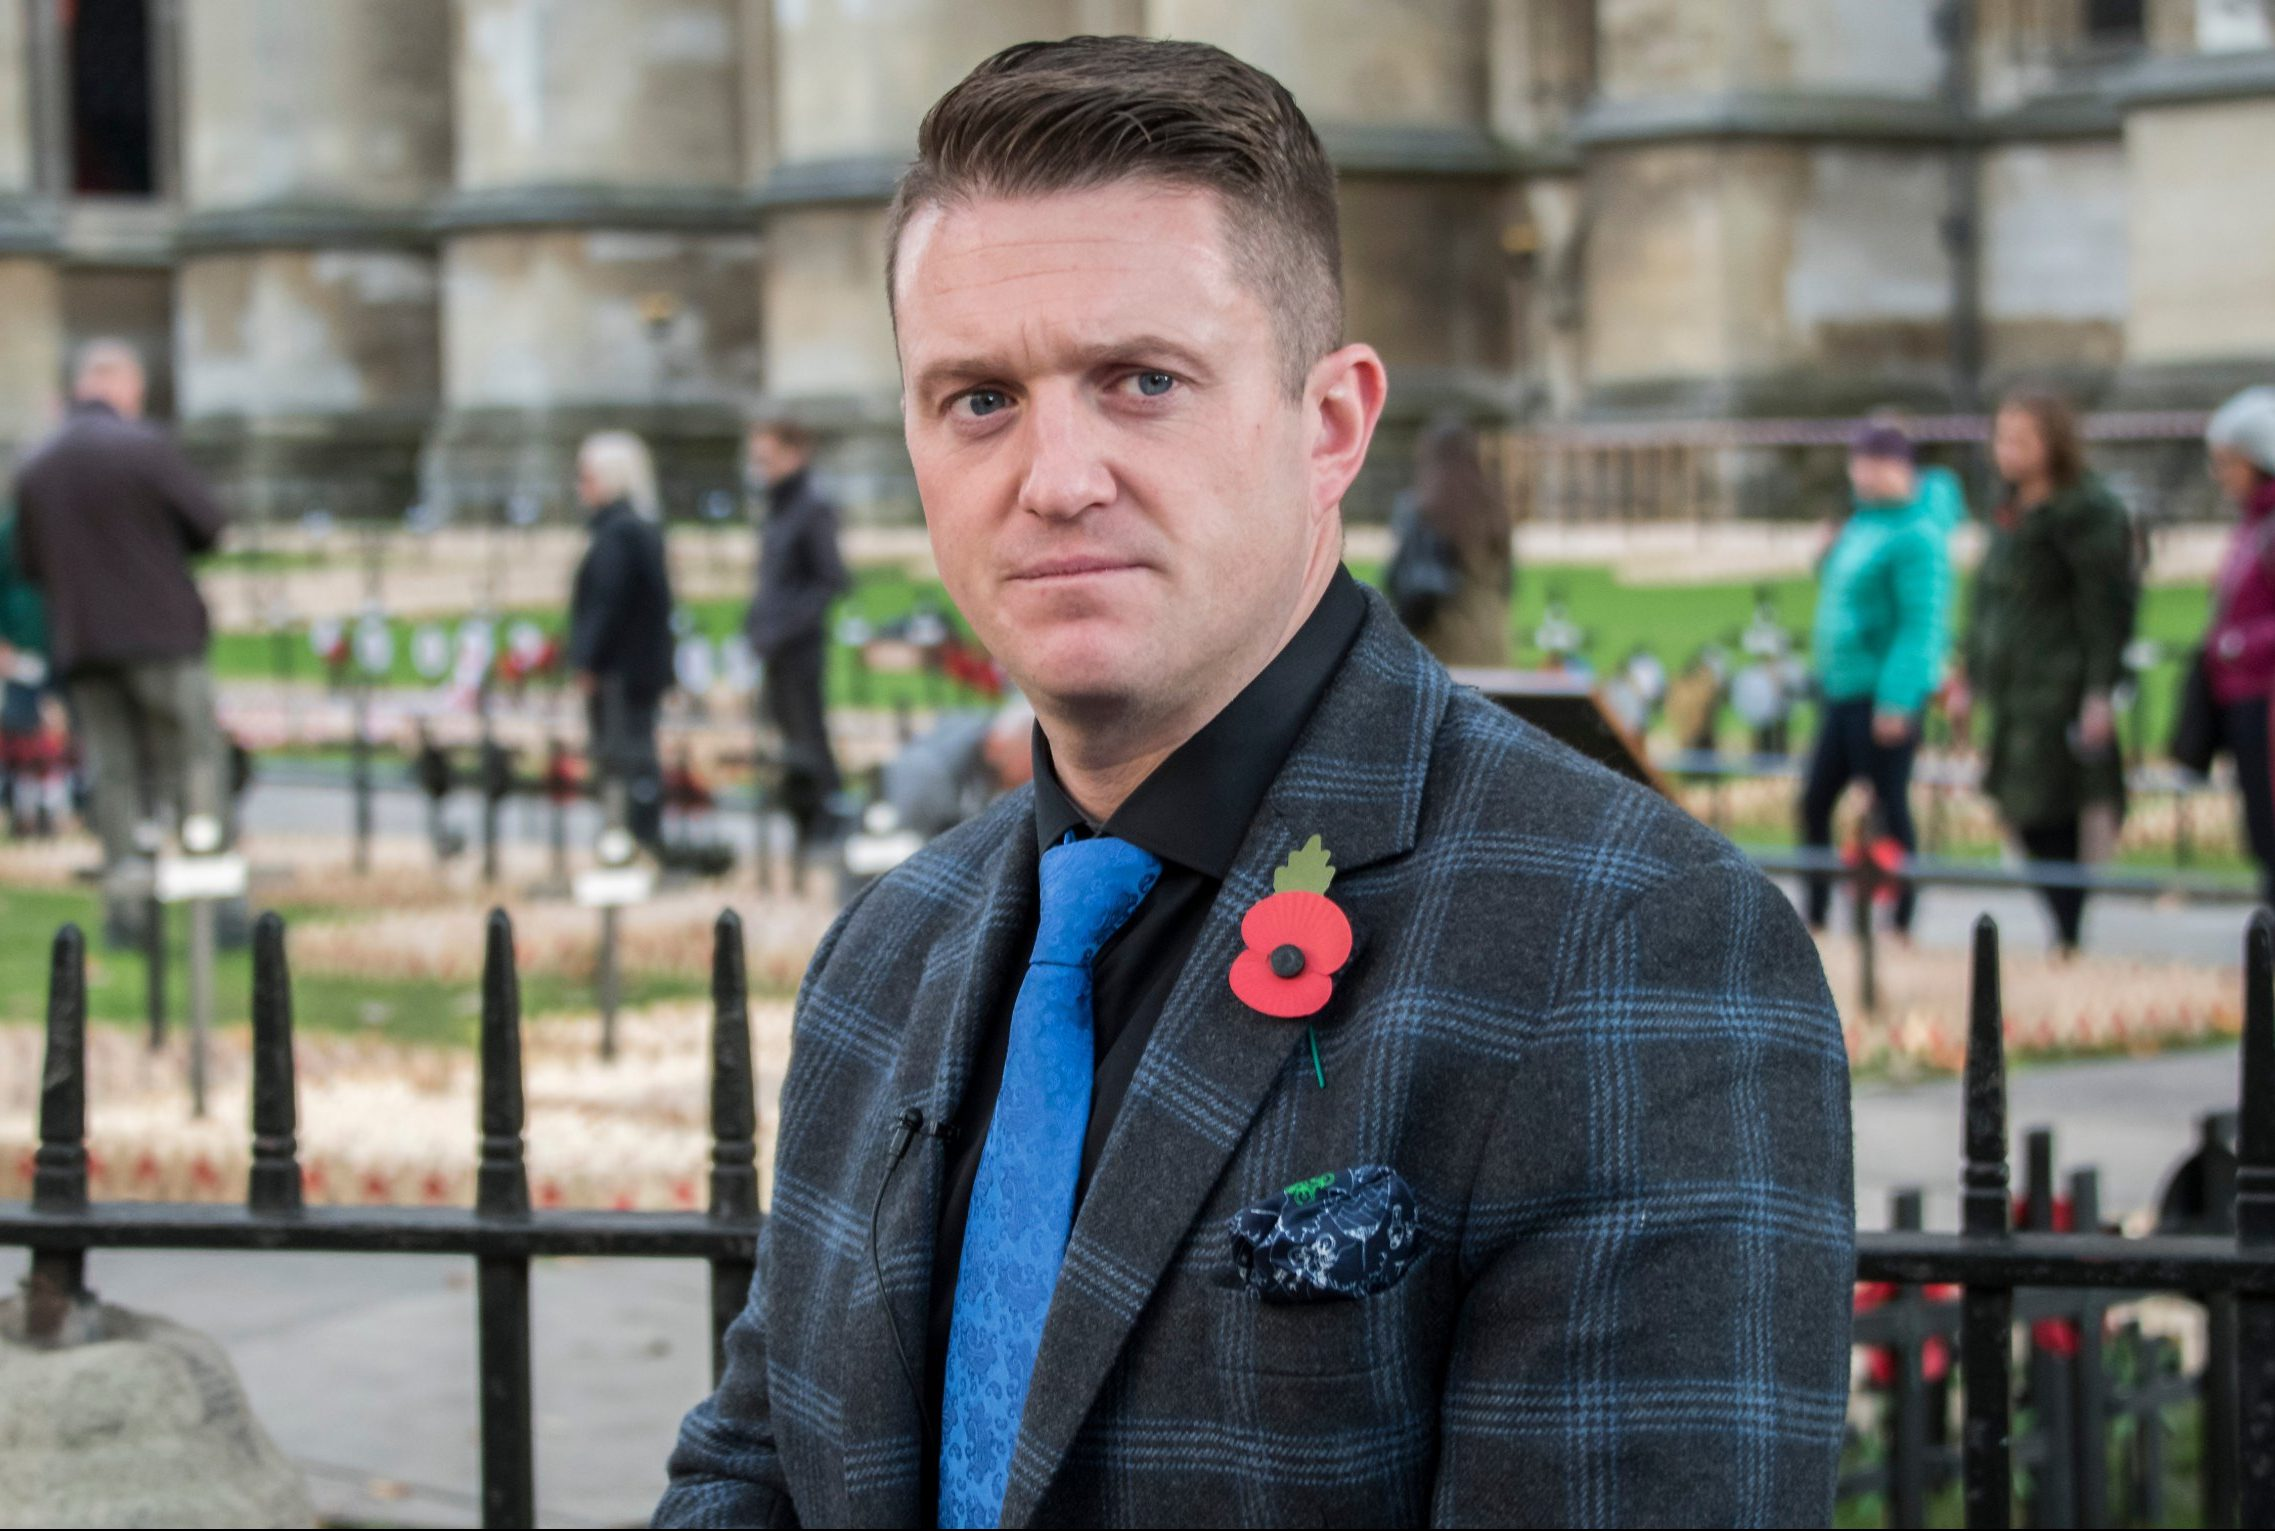 Mandatory Credit: Photo by Guy Bell/REX (9968761aj) Tommy Robinson makes a video outside while preperations for the Royal British Legion, Field of Remembrance at Westminster Abbey take place. Field of Remembrance preparations, London, UK - 06 Nov 2018